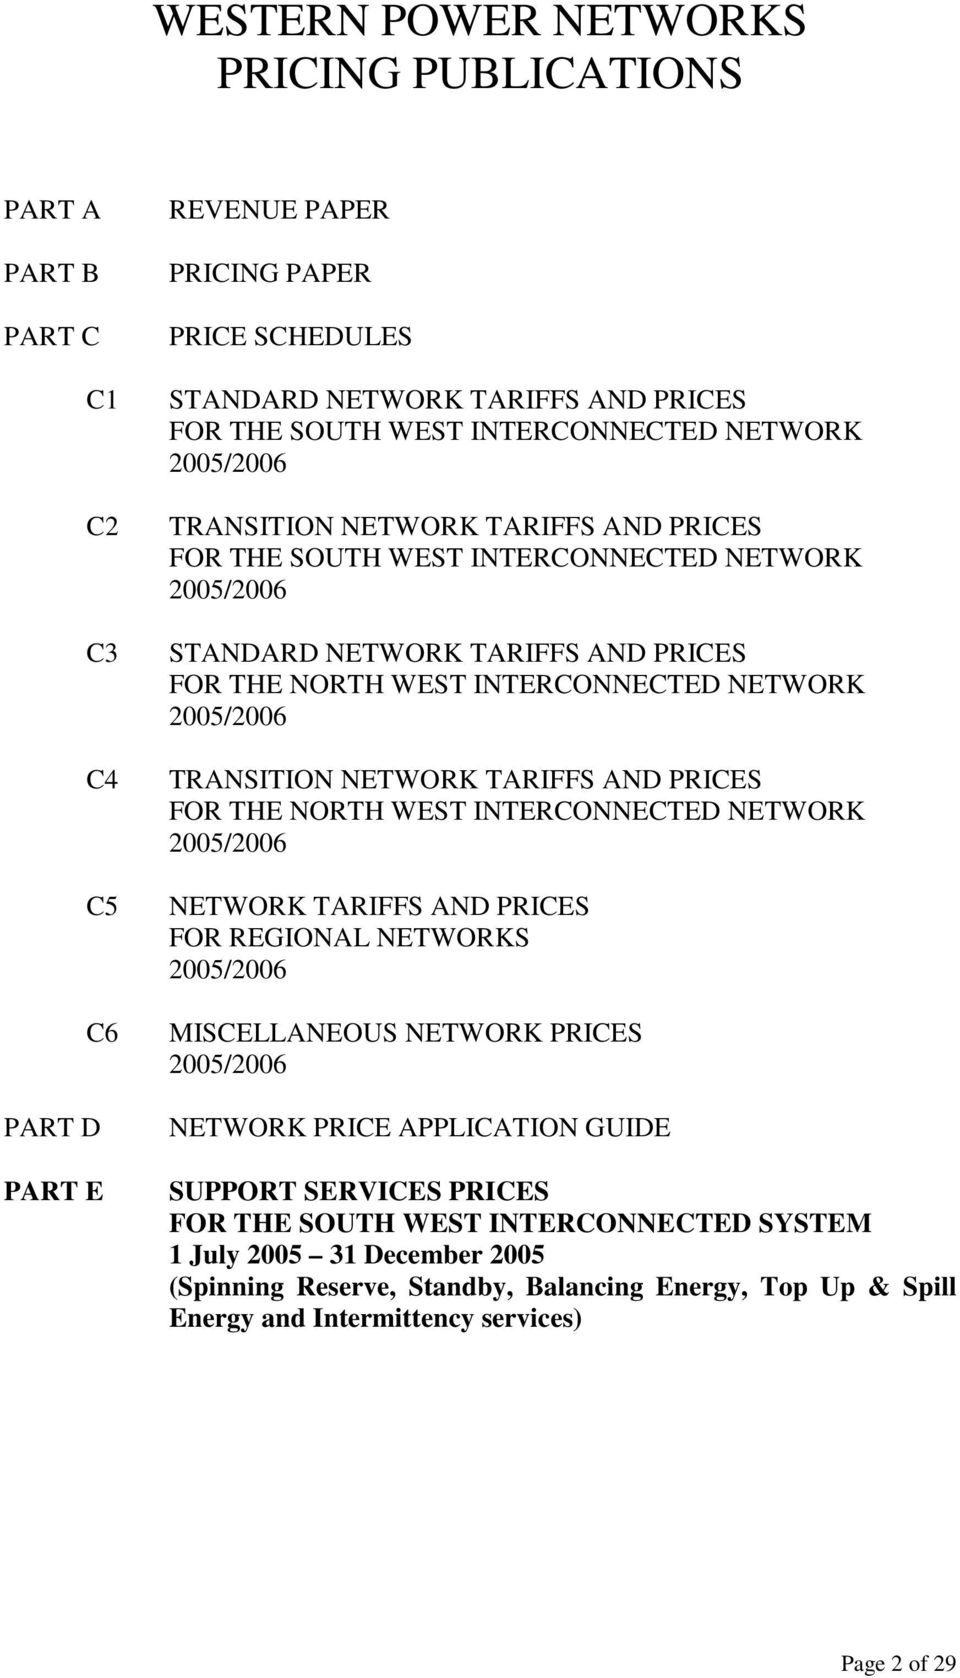 NETWORK 2005/2006 TRANSITION NETWORK TARIFFS AND PRICES FOR THE NORTH WEST INTERCONNECTED NETWORK 2005/2006 NETWORK TARIFFS AND PRICES FOR REGIONAL NETWORKS 2005/2006 MISCELLANEOUS NETWORK PRICES